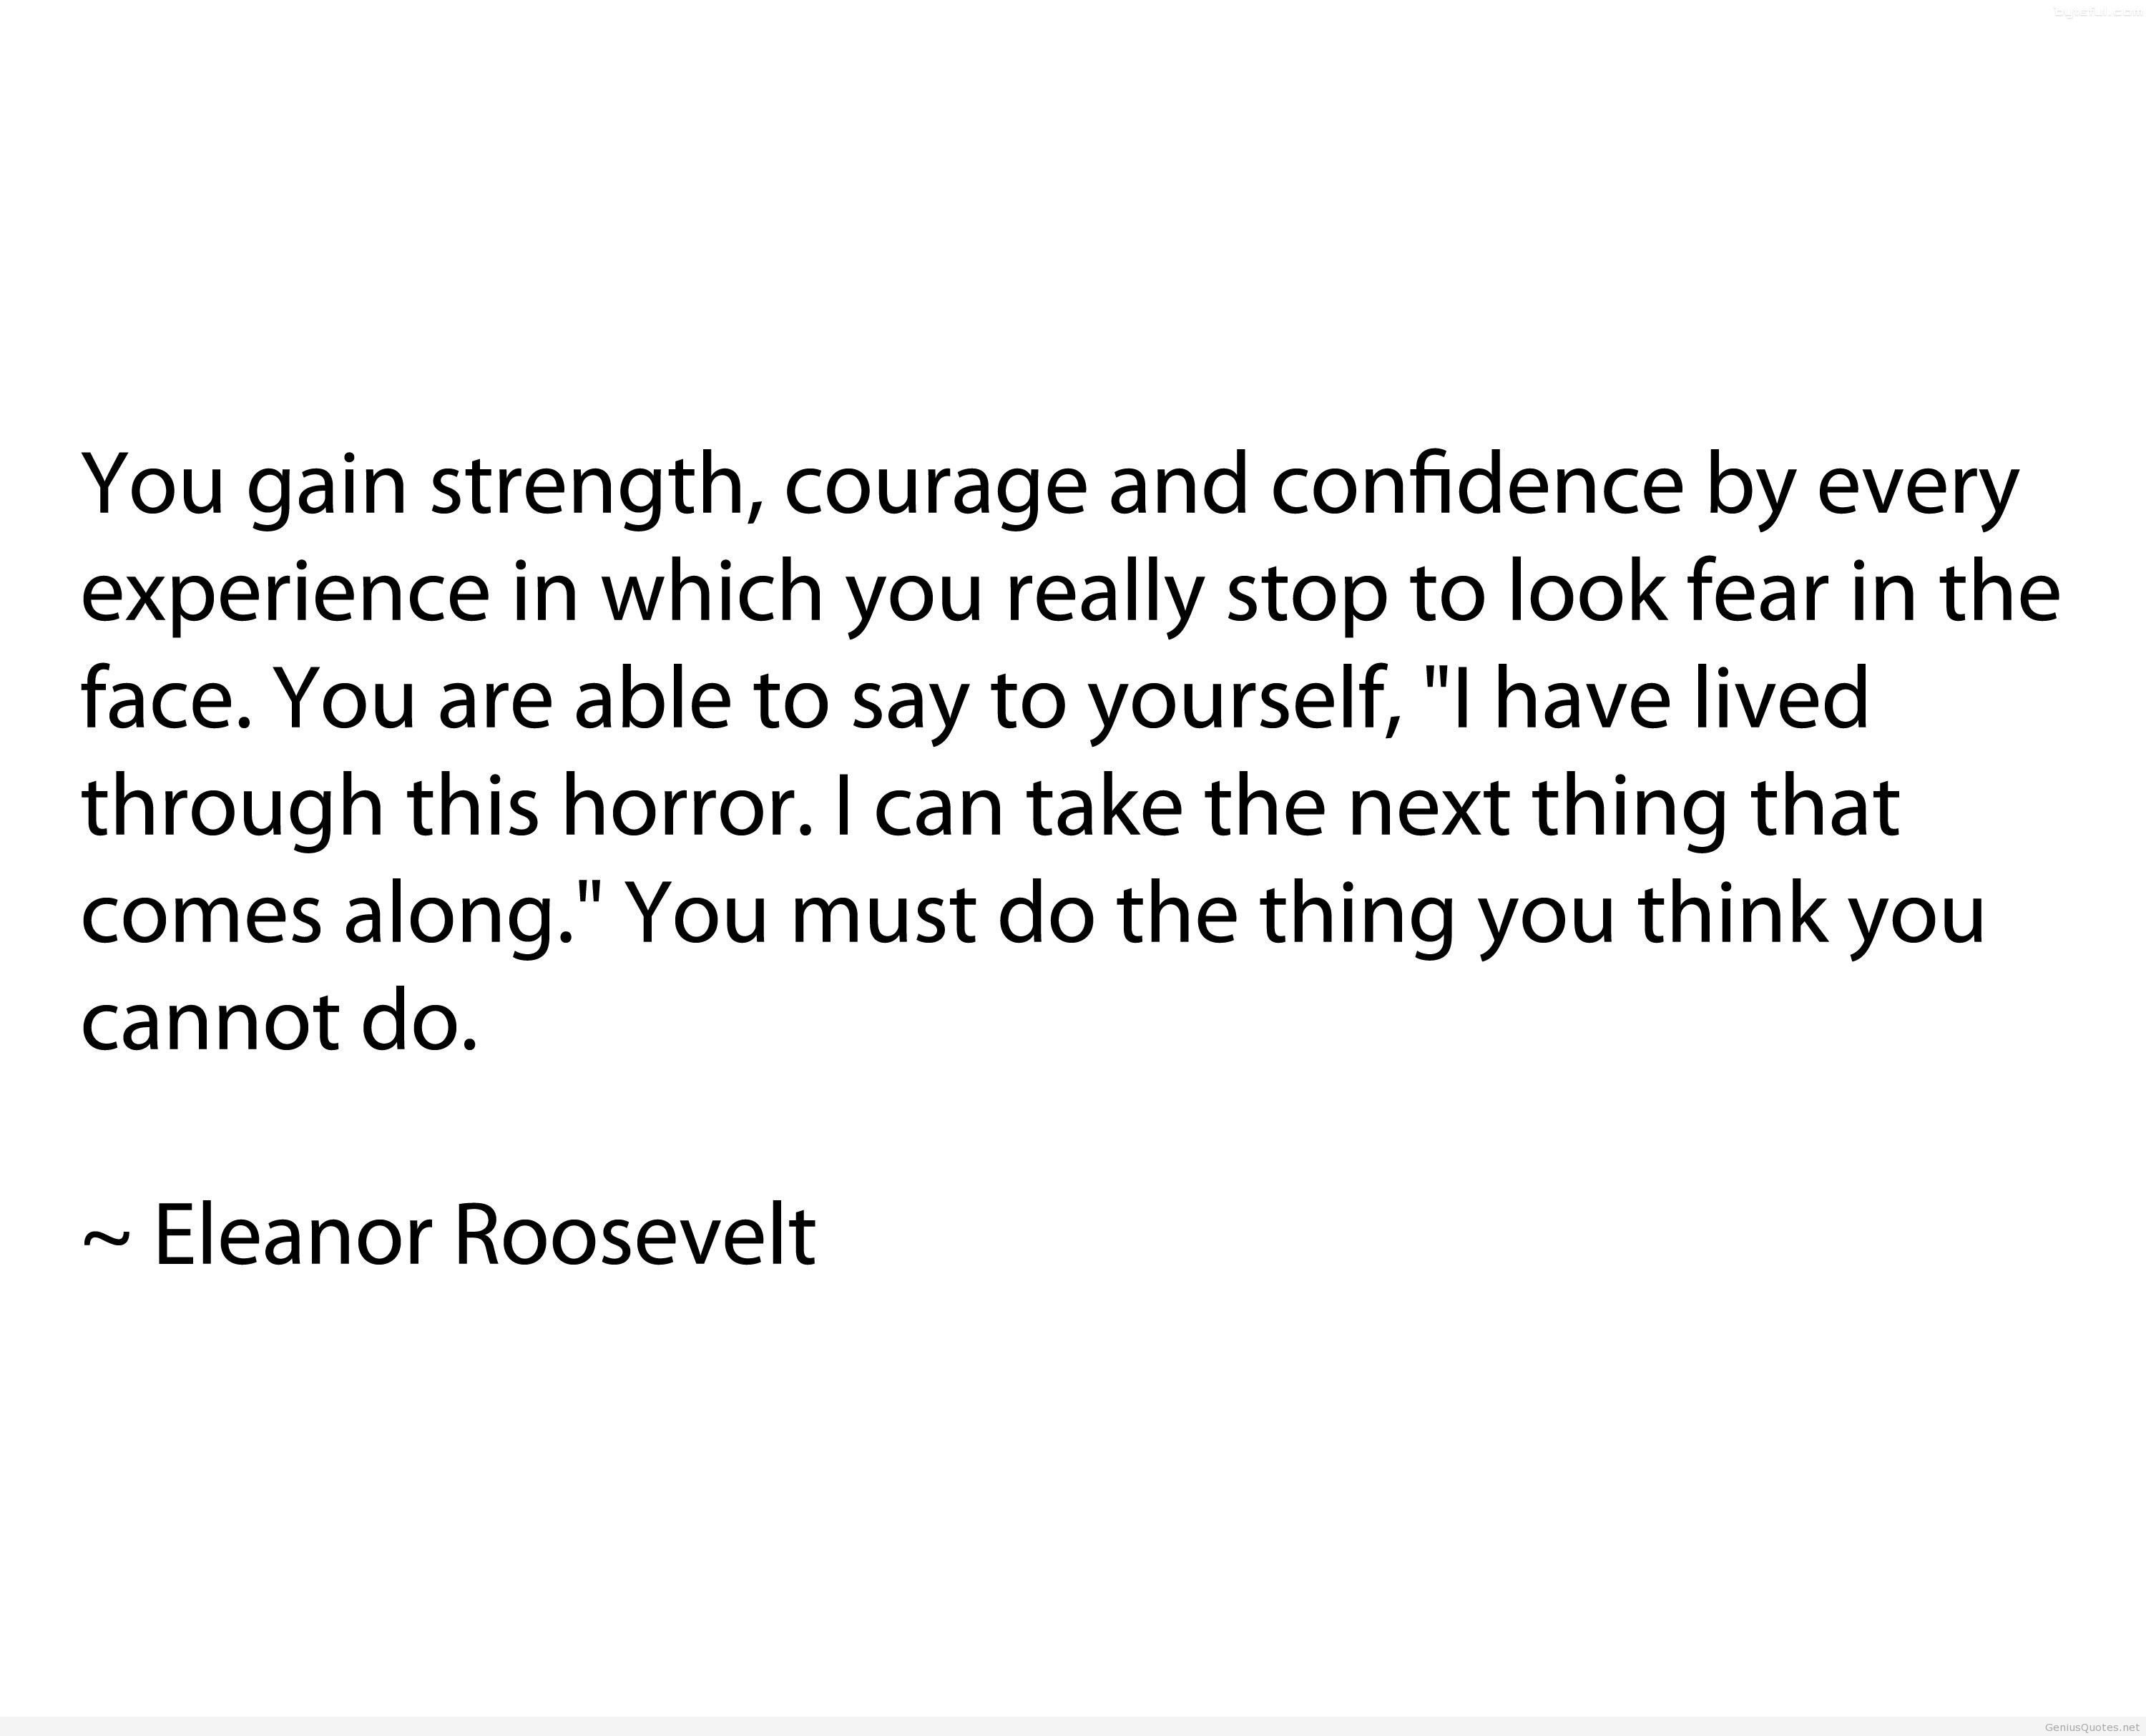 Quotes Eleanor Roosevelt Genius Quotes  Part 843  Lotus  Blossom Inspiration  Pinterest